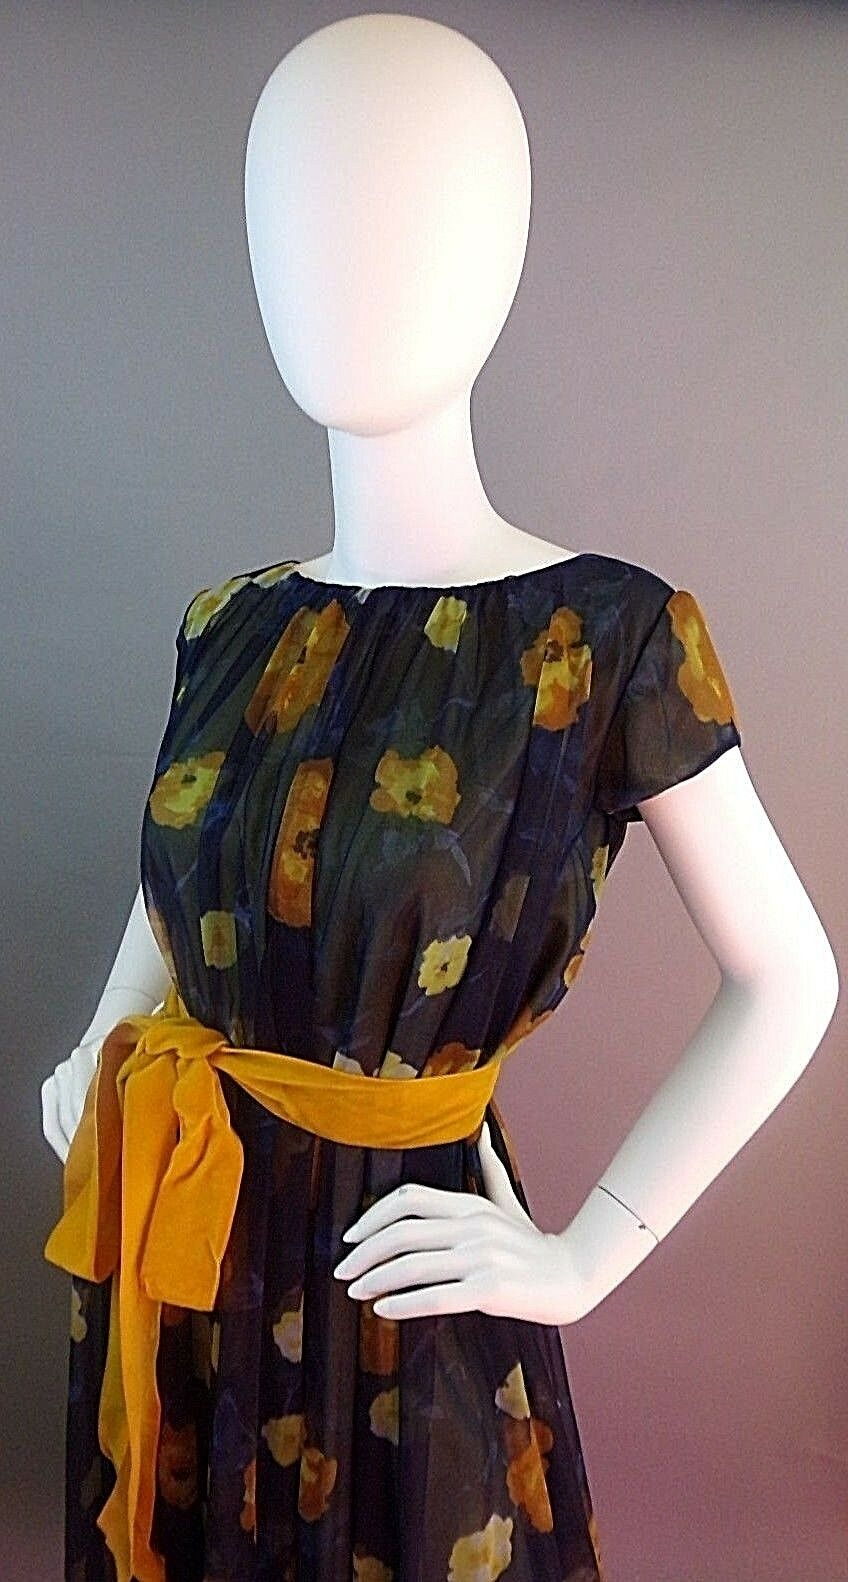 VINTAGE LUCIE ANN BEVERLY HILLS 1950s NIGHTGOWN - image 9